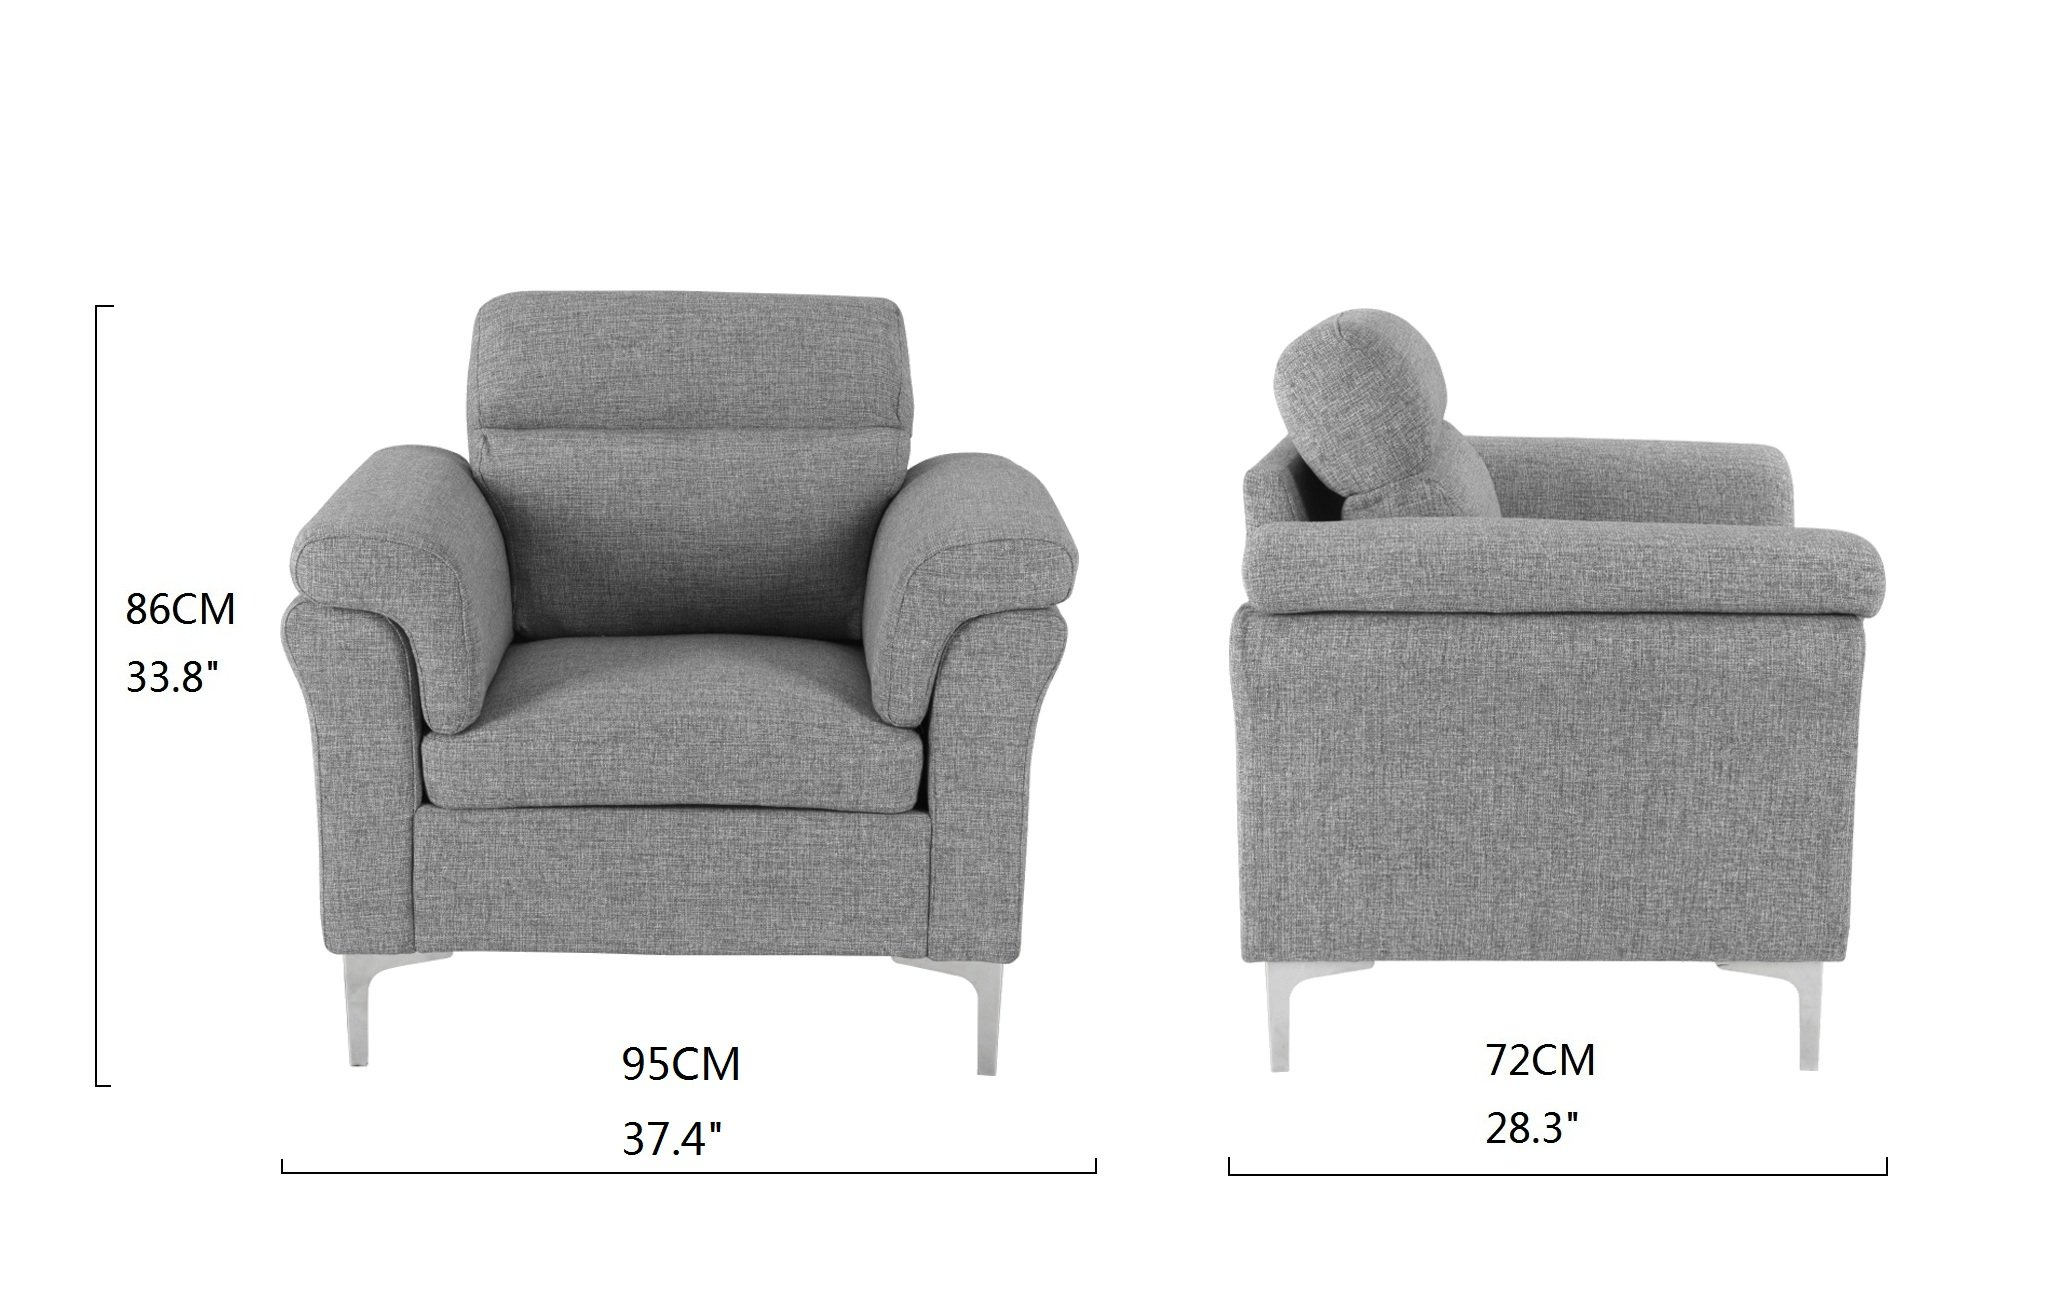 light grey chair ez barber classic living room family fabric armchair accent details about